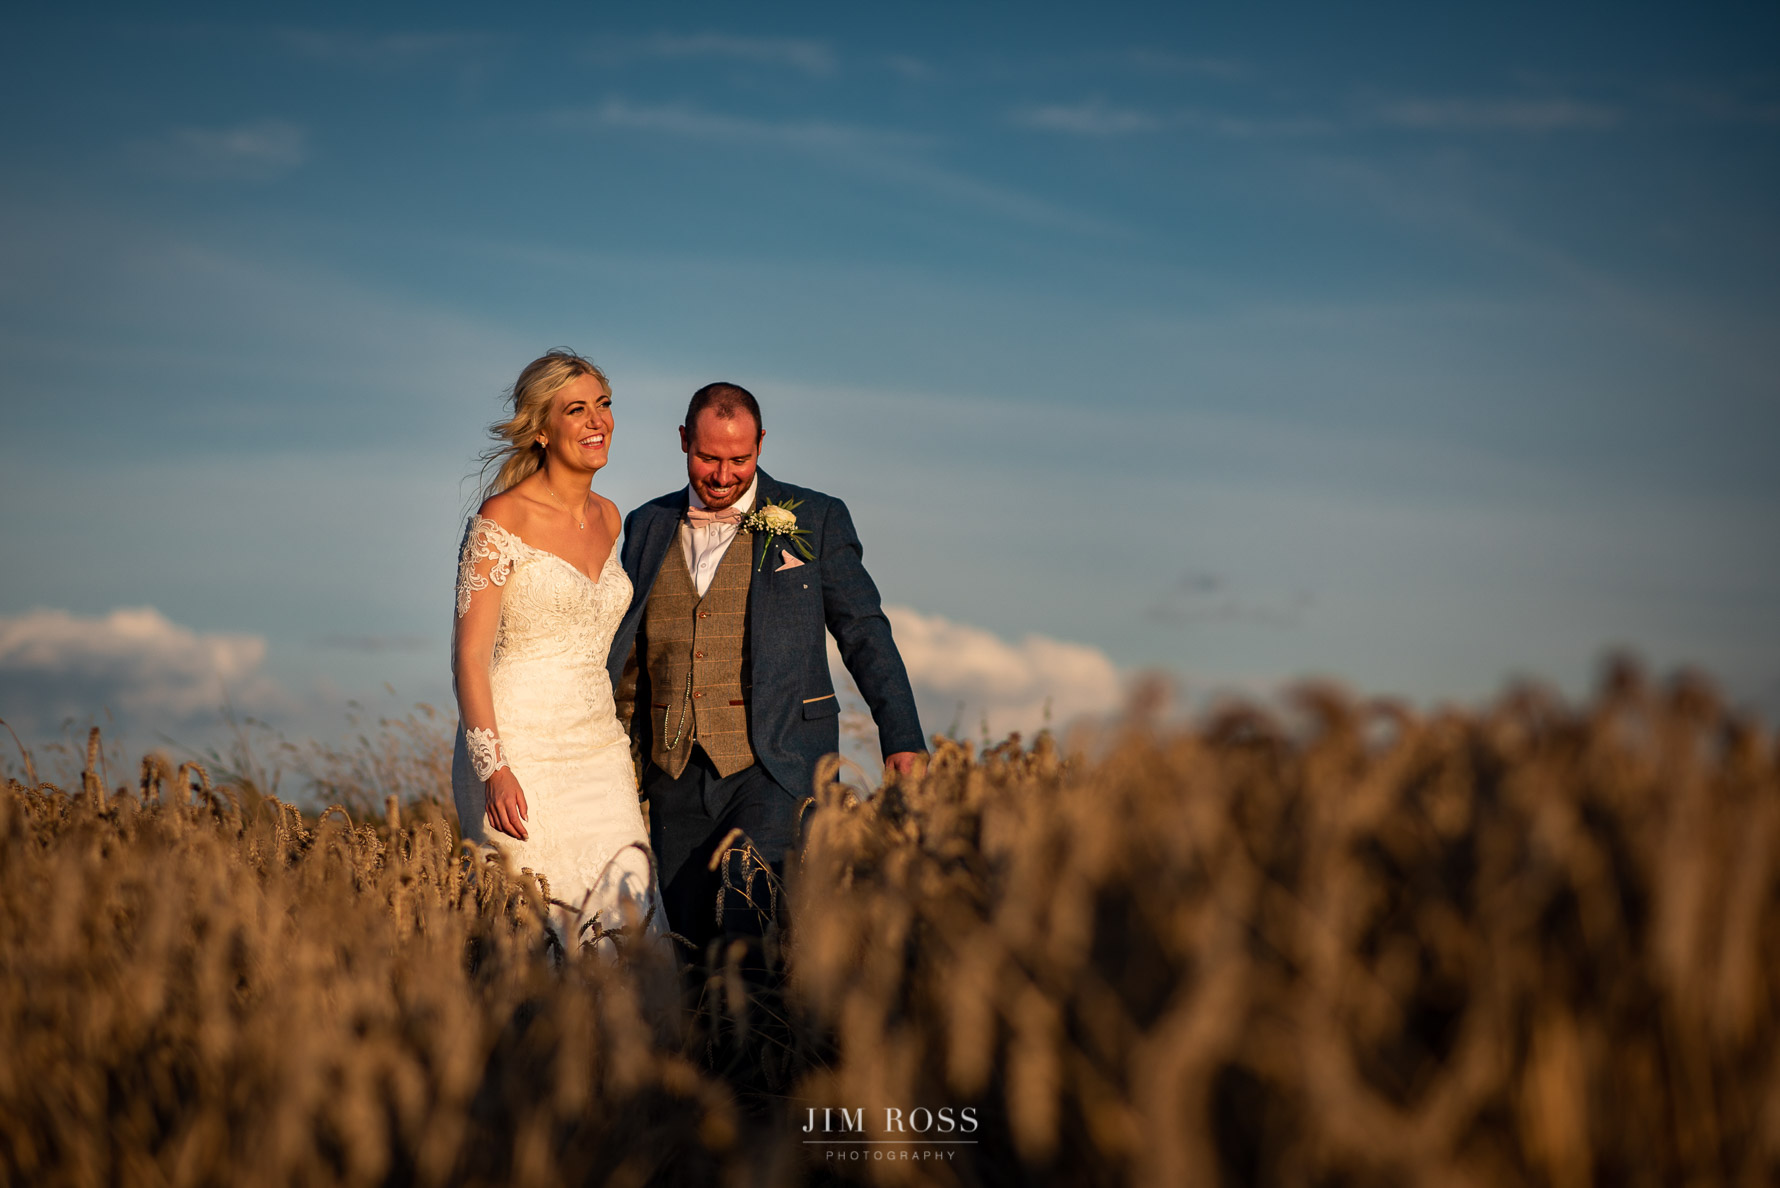 Cornfield wedding photo